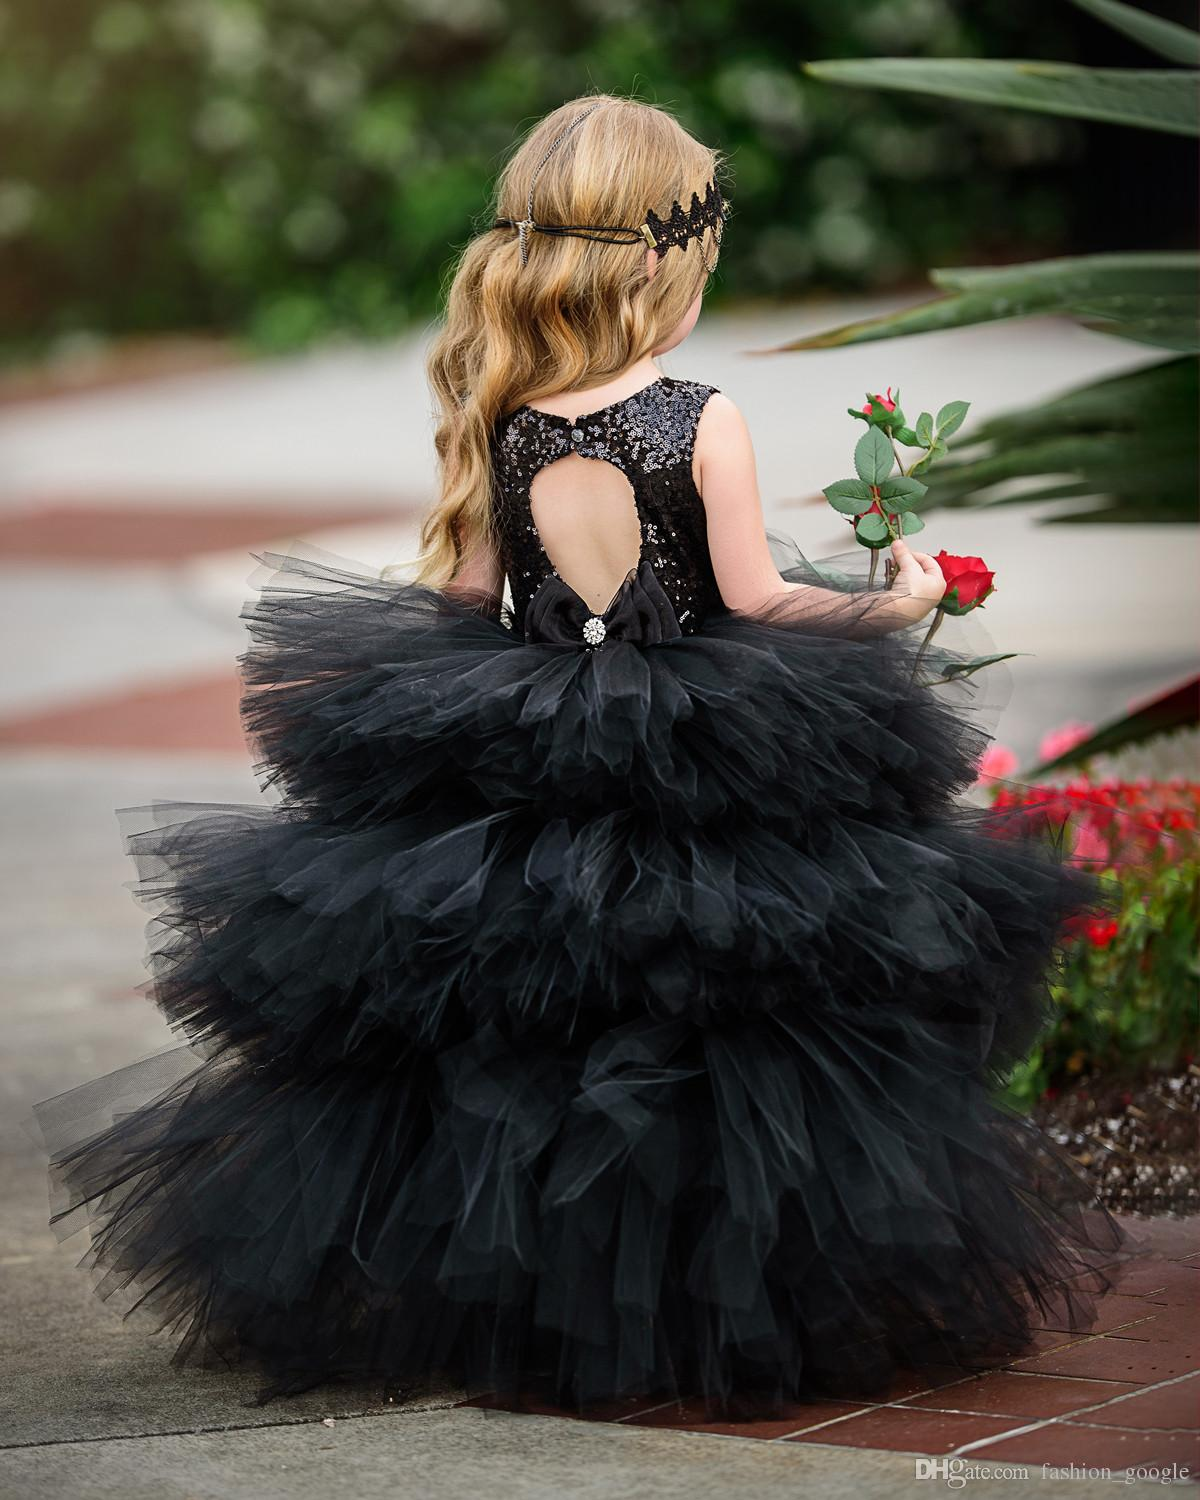 The Swan Princess Girls Dresses 2017 with Sequins Bodice & Ruffles Skirt Ball Gown Black Flower Girls Dress Hi Lo Style for Country Weddings